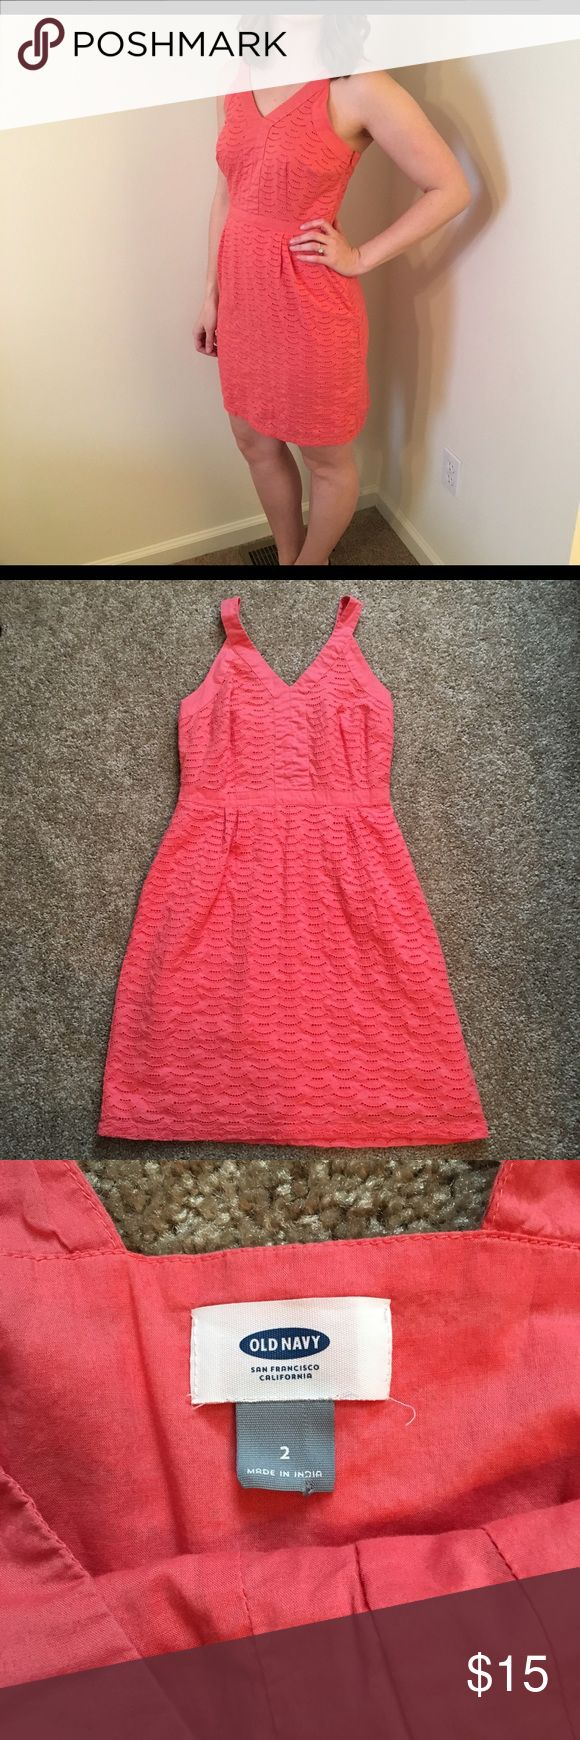 Old Navy coral sundress with eyelet detail This coral sundress is so adorable! It looks great styled with some cute wedges and a statement bracelet. It's in great condition! Old Navy Dresses